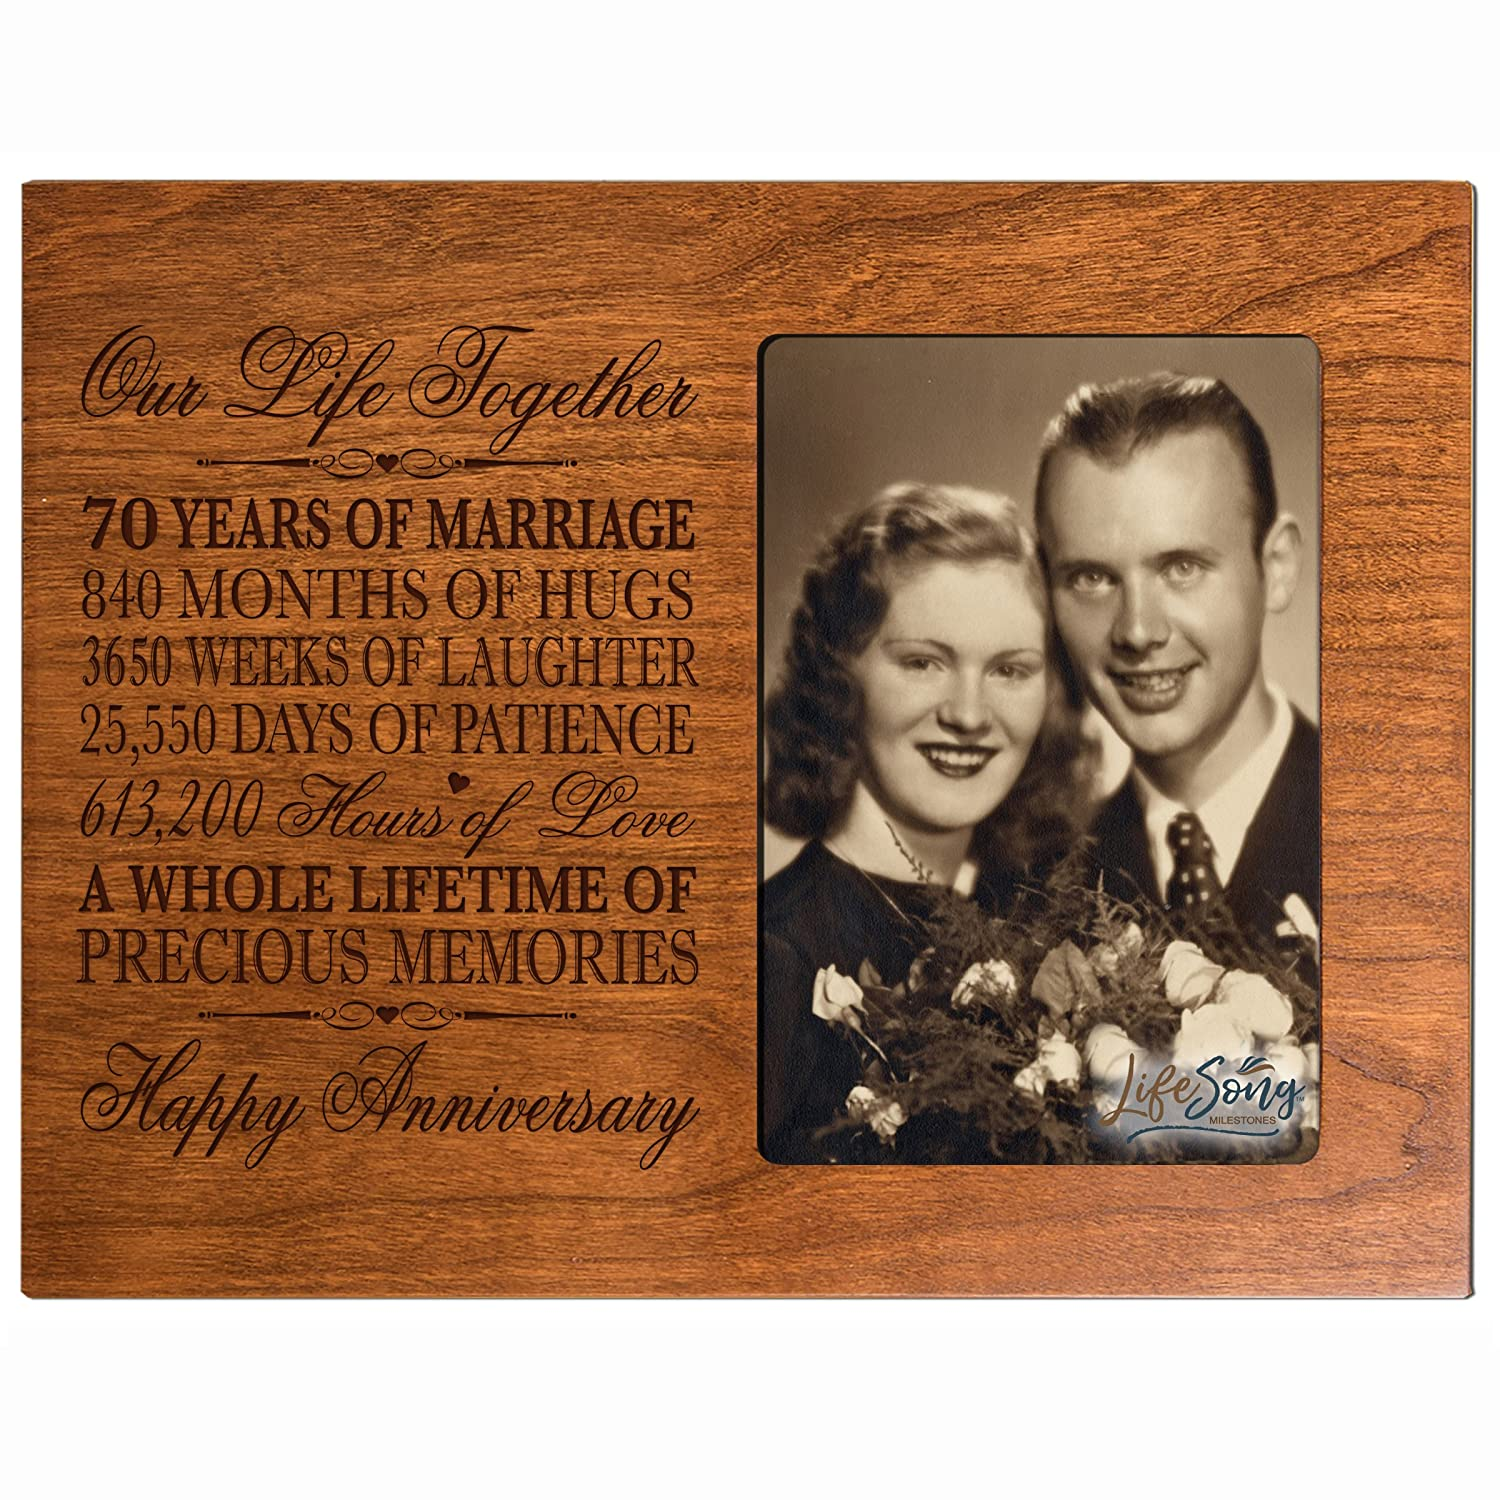 70th Anniversary Gifts for Her Him 70 year Wedding Anniversary gift for couple Parents Celebration Gift picture Frame Holds 1 4x6 Photo 8